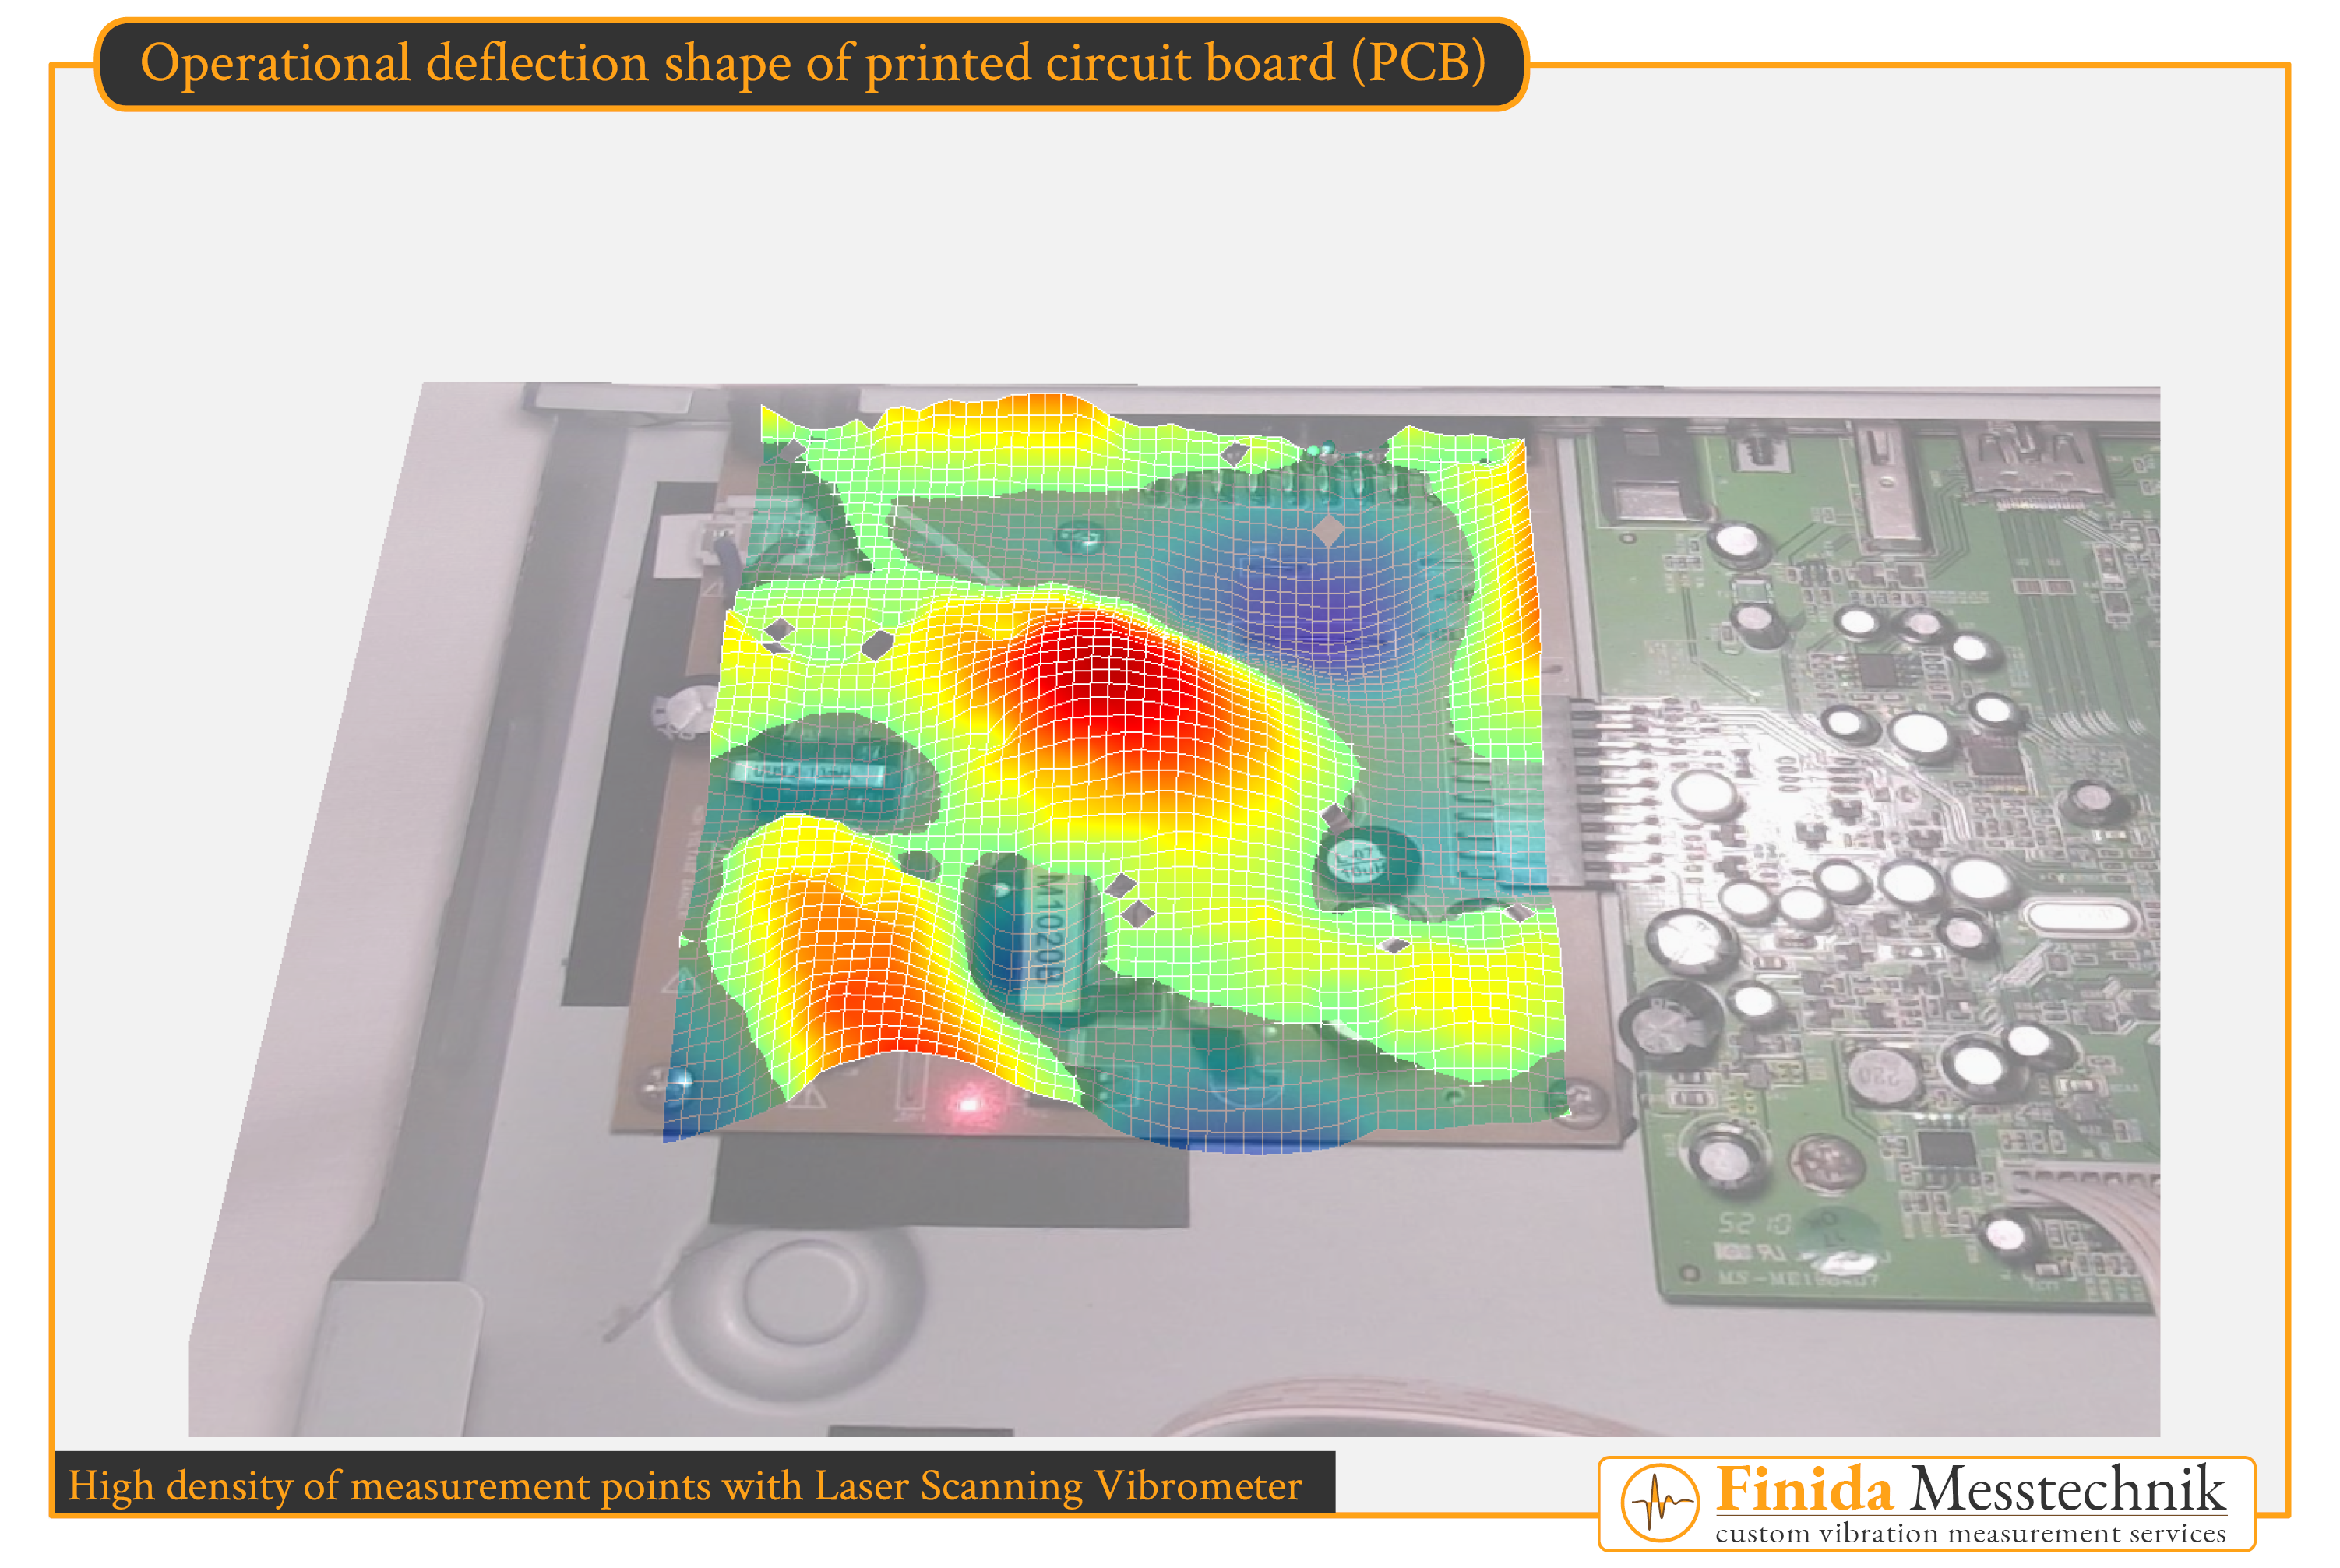 Scanning Vibrometers detect and visualize surface vibrations optically – that means without contacting the structure. No mass-loading occurs. The result of an operating deflection shape analysis of a printed circuit board (PCB) is shown on this picture. Finida Messtechnik offers custom vibration measurement services like operational deflection shape analysis (ODS) and experimental modal analysis (EMA).